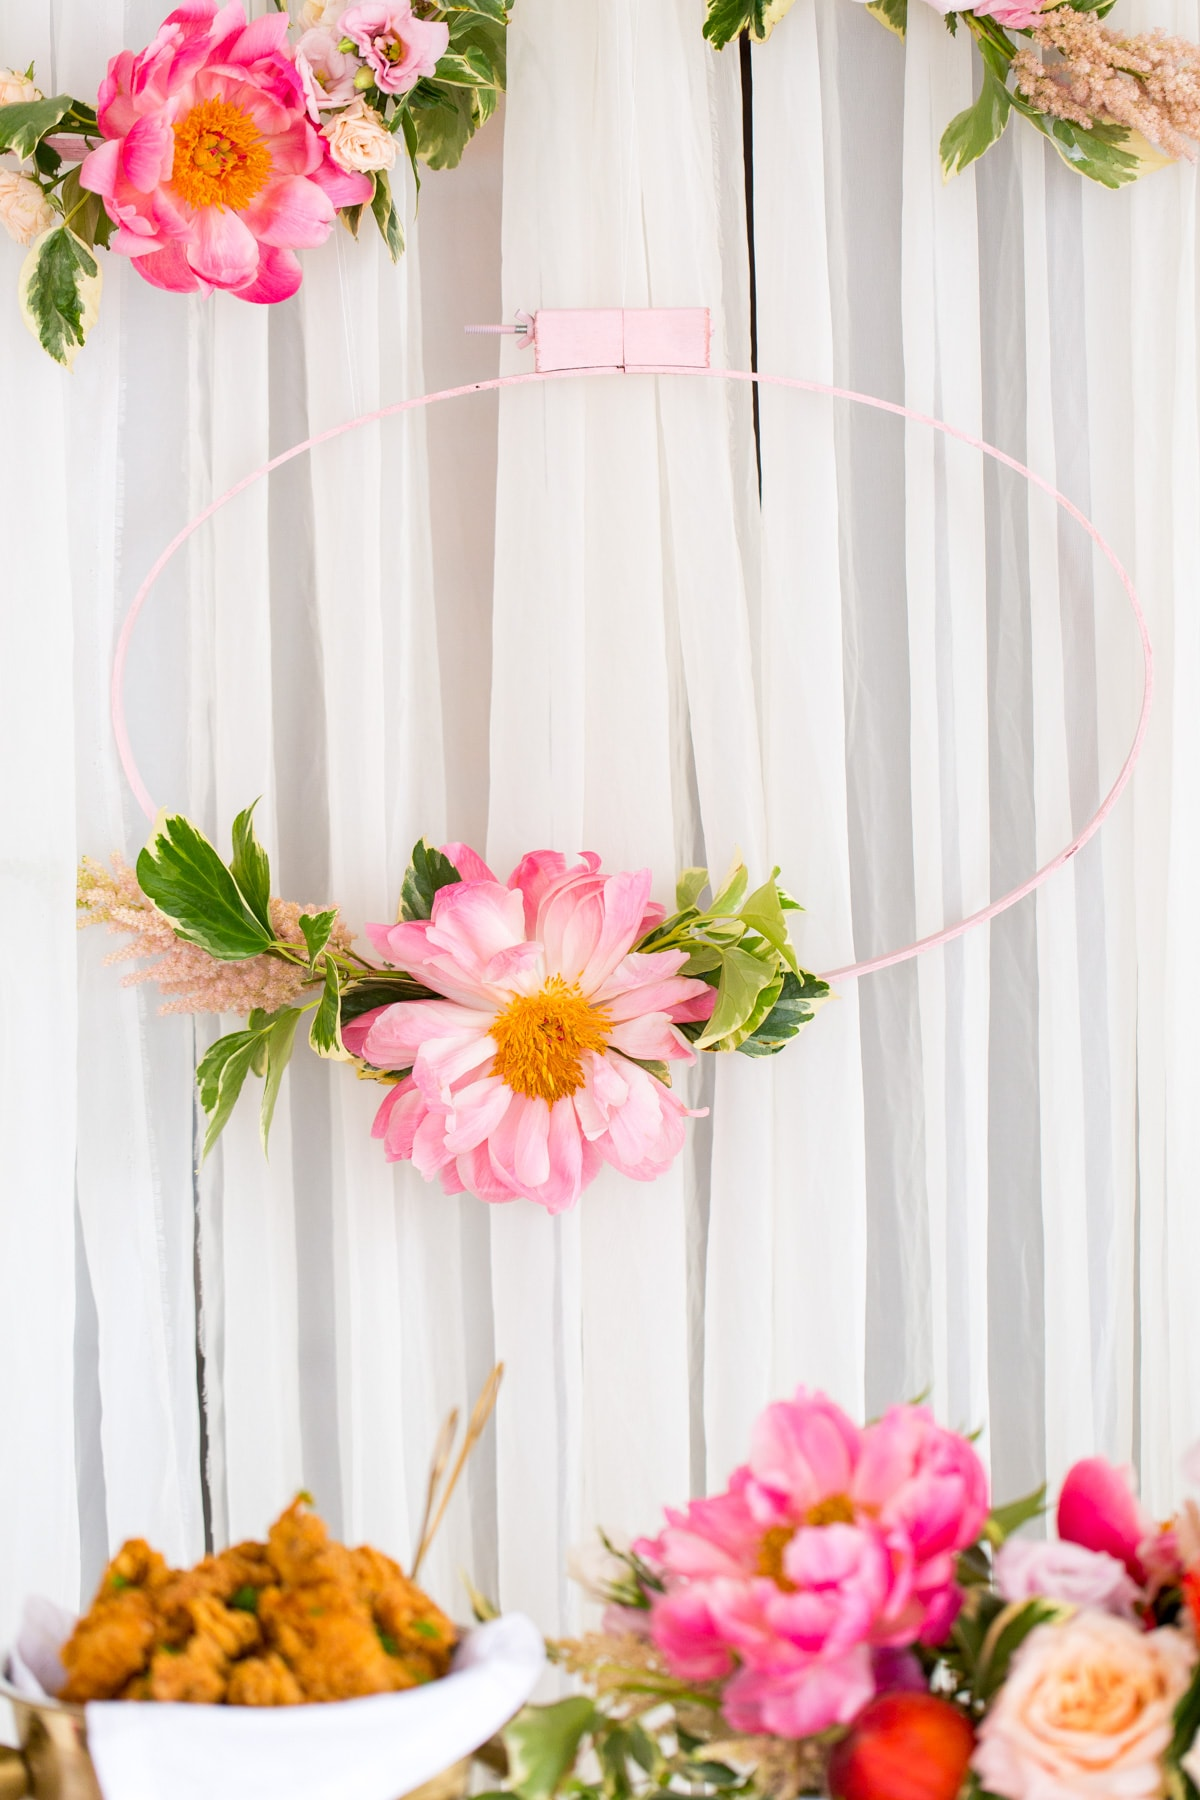 DIY Floral Embroidery Ring Backdrop by Ashley Rose of Sugar & Cloth, a lifestyle blog in Houston, TX